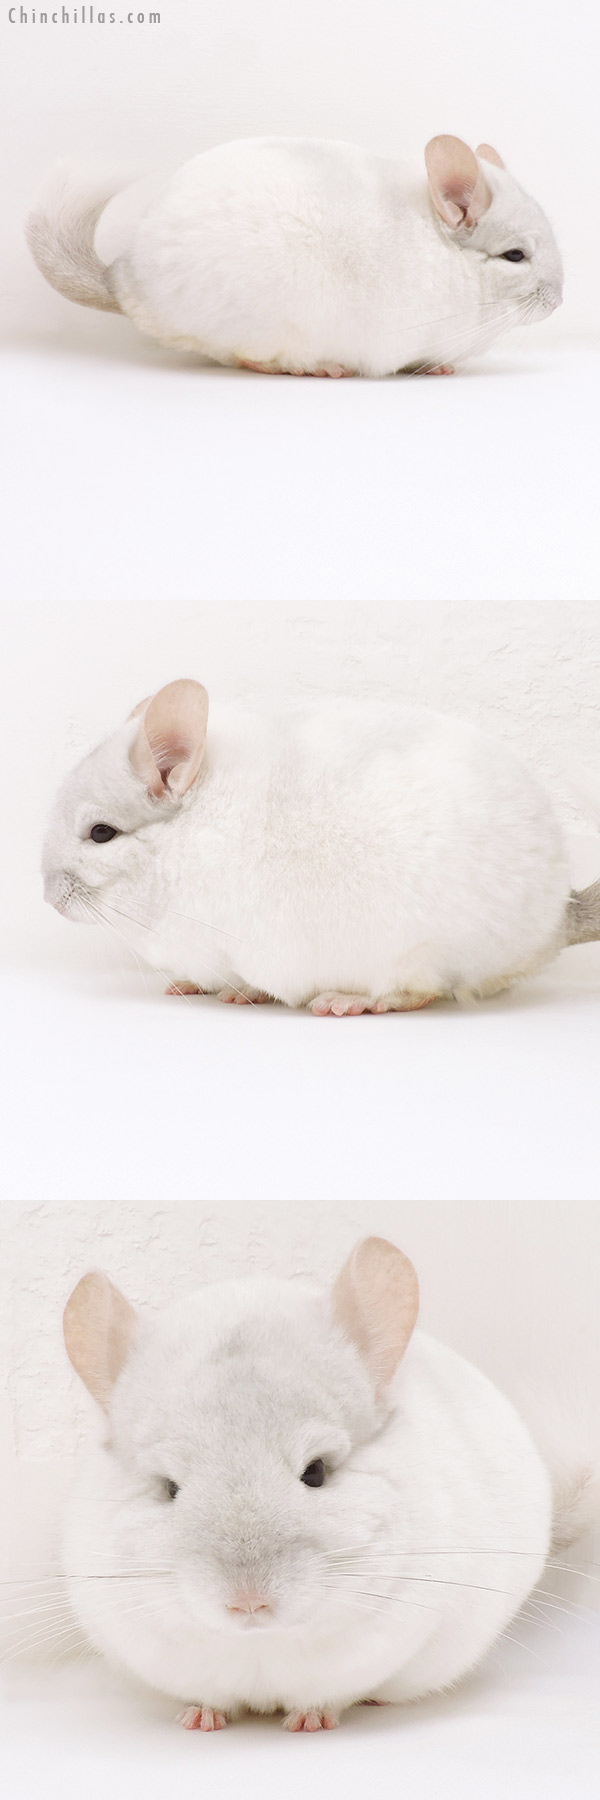 17025 Blocky Herd Improvement Quality Pink White Male Chinchilla